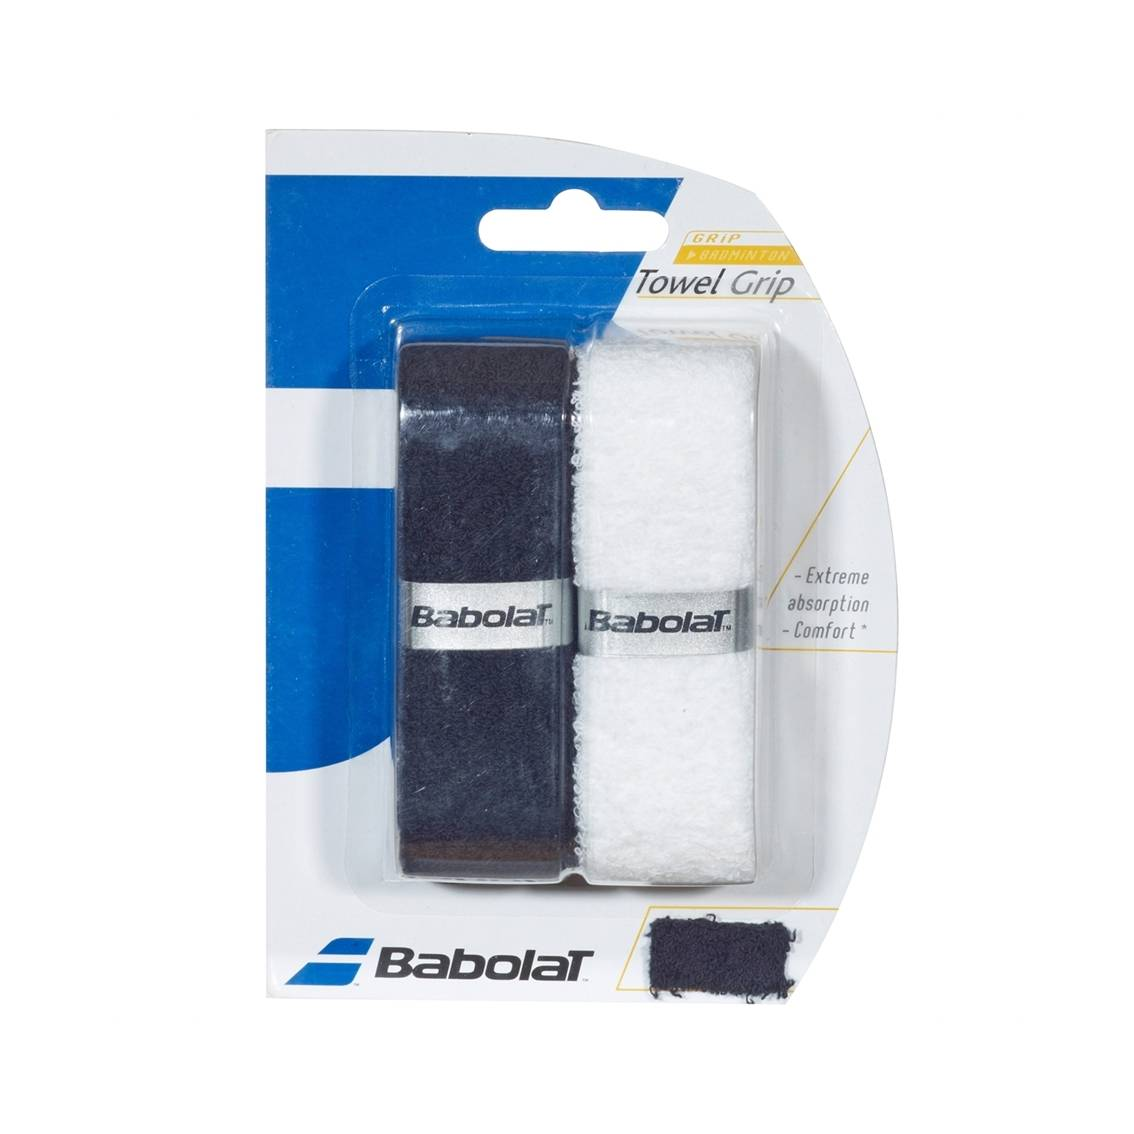 Babolat Towel Grip Black/White